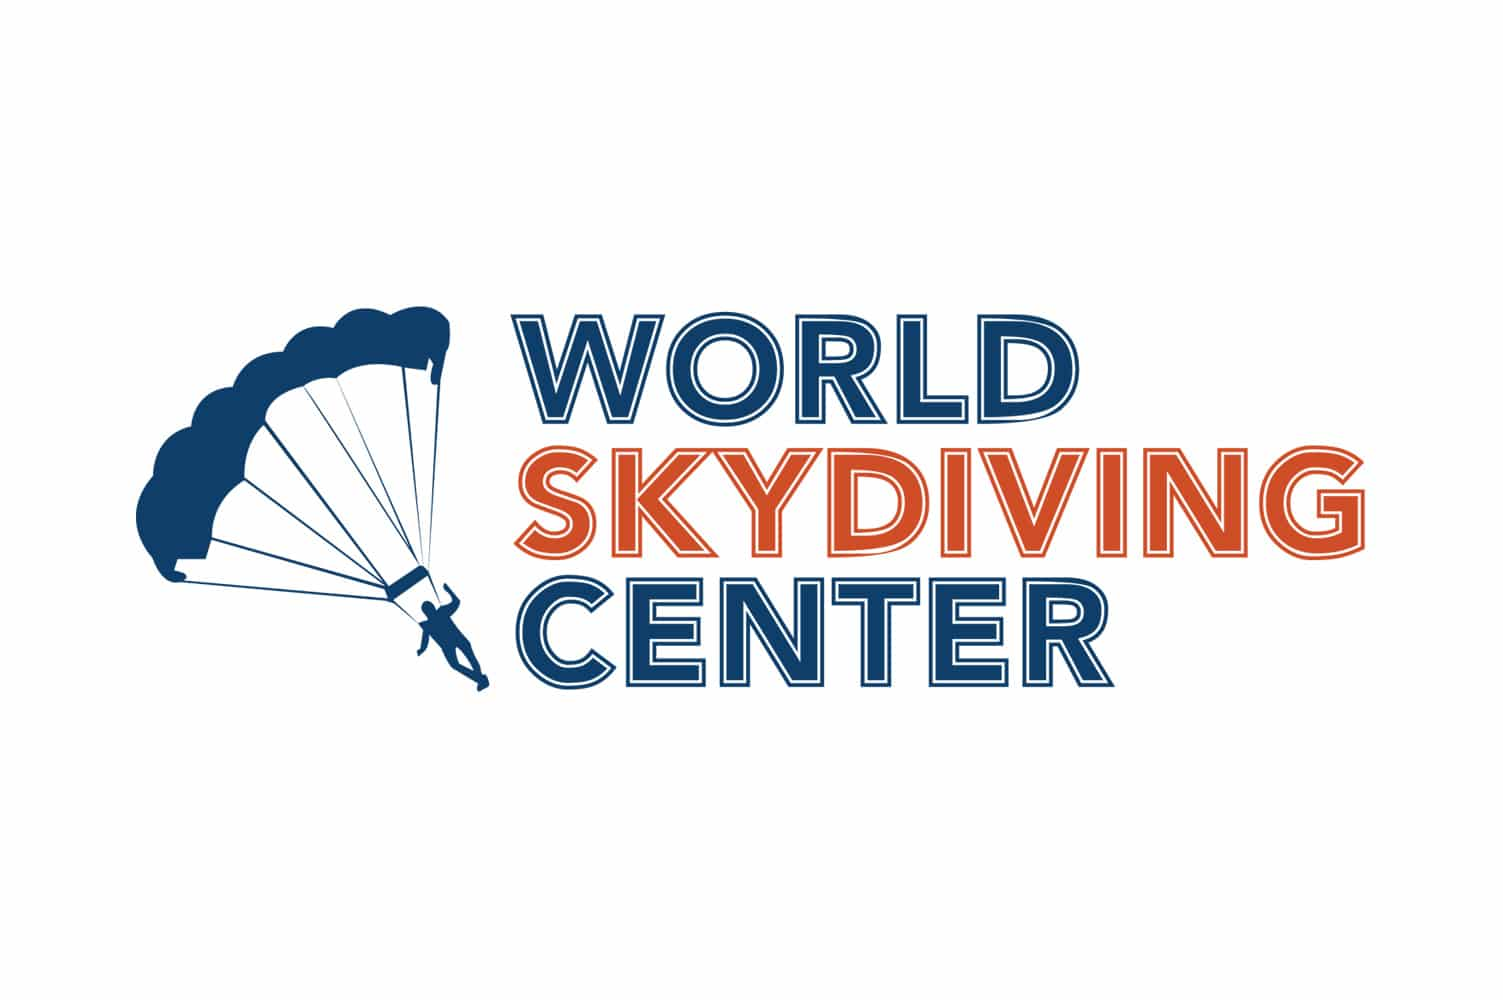 world-skydiving-center-logo-design